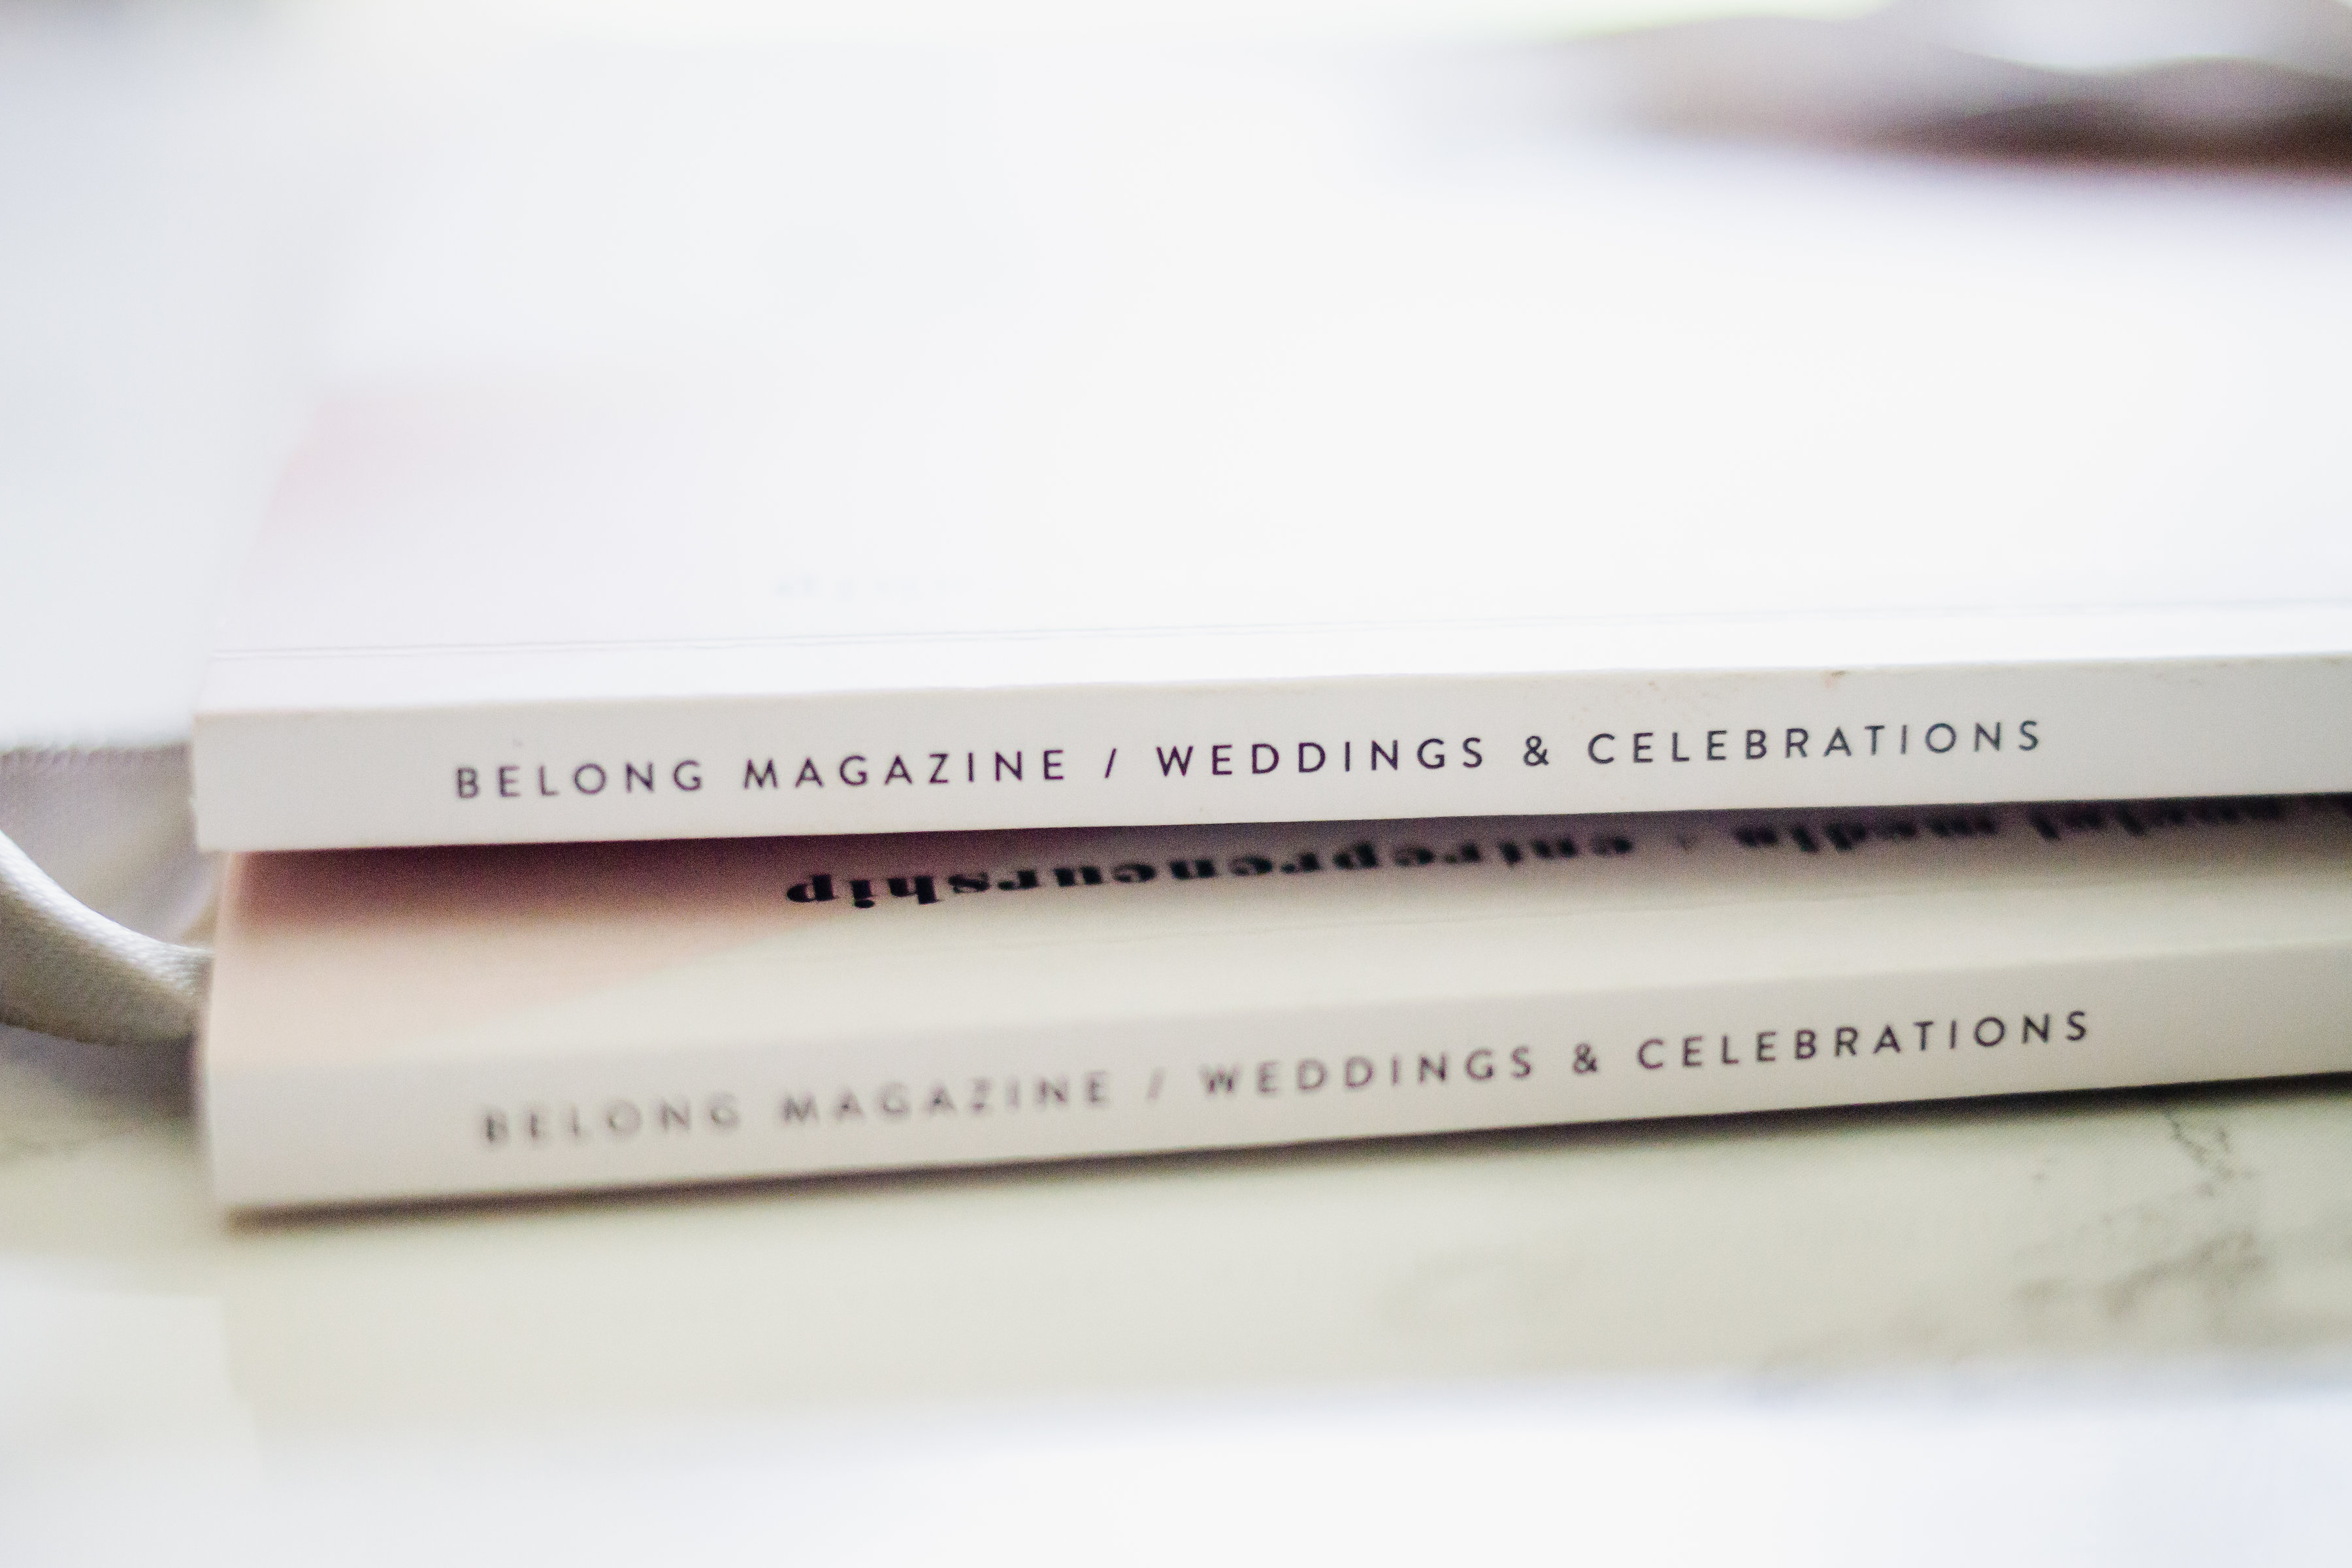 two wedding magazine spines